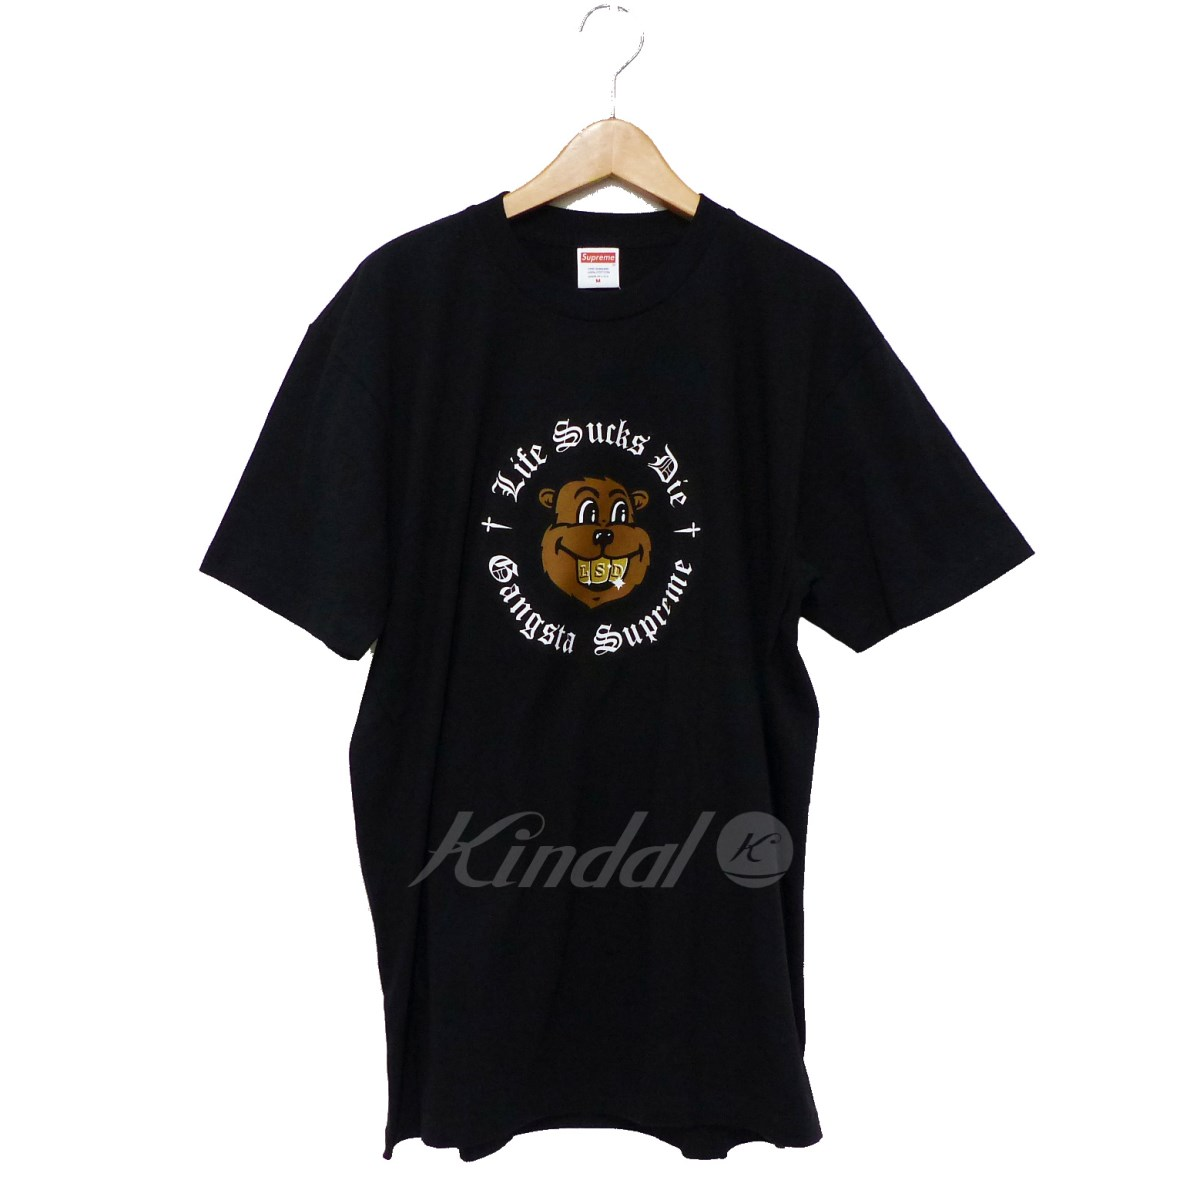 【中古】SUPREME 2018AW Life Sucks Die Tee 【送料無料】 【207631】 【KIND1550】